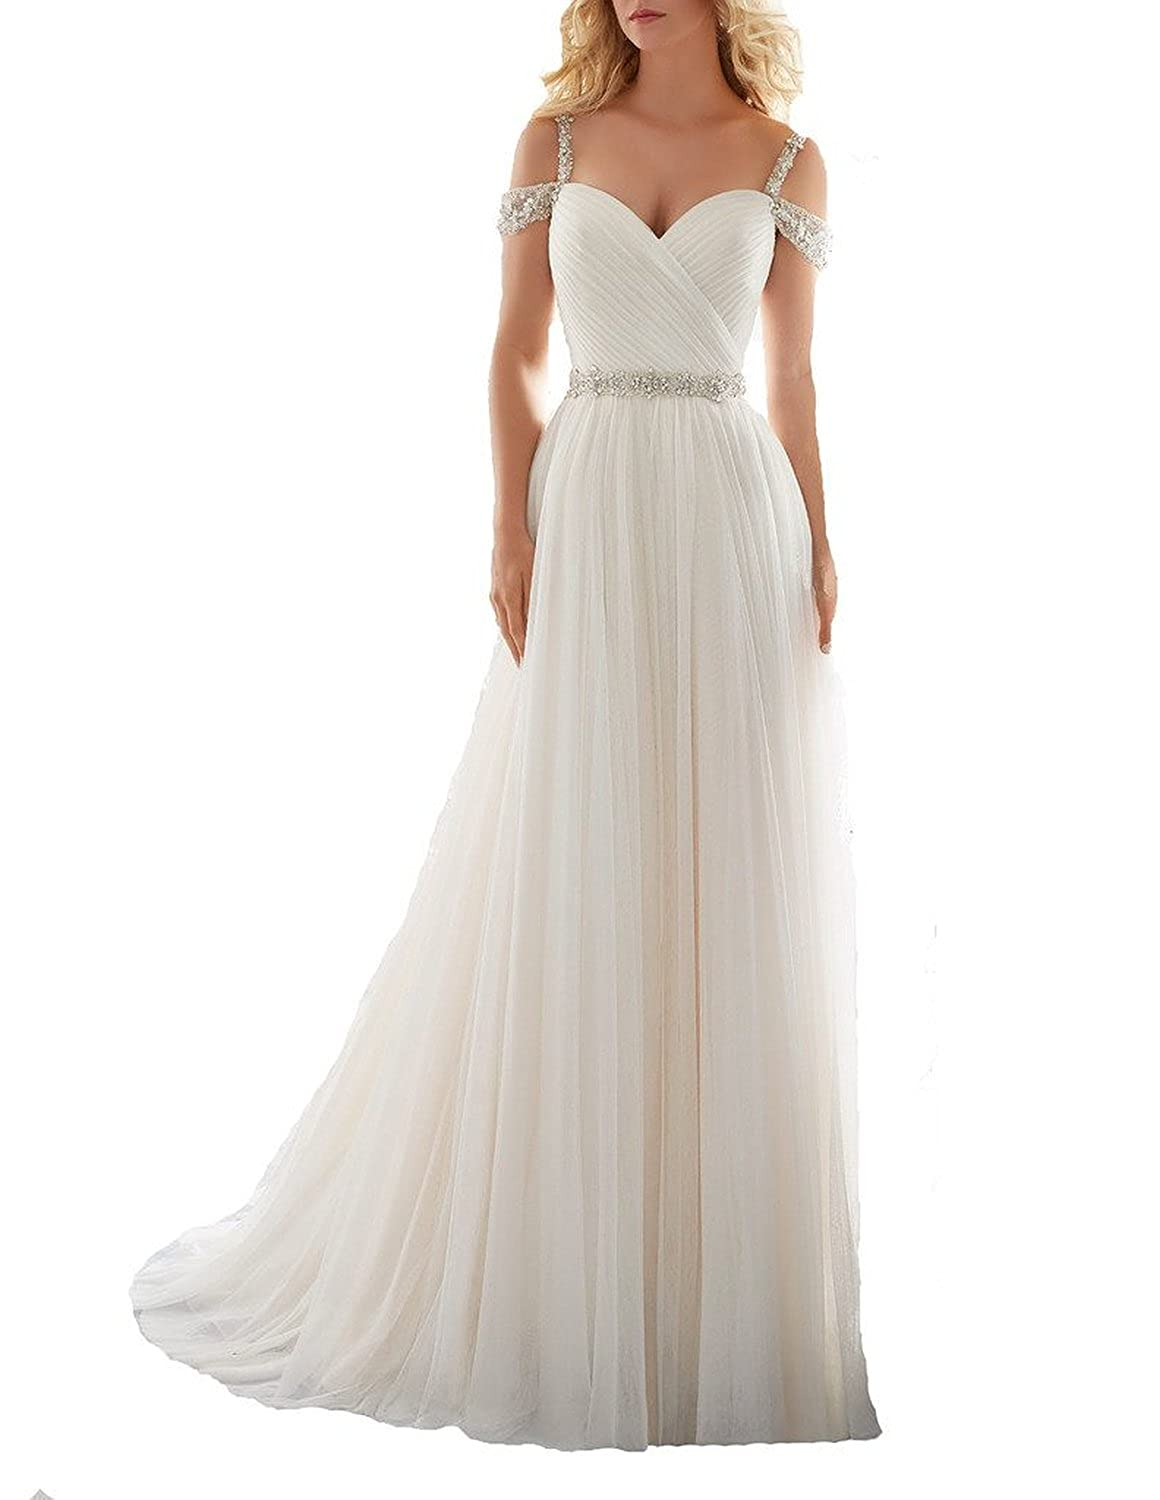 a0071d2188c 2016 A-line Elegant Beach Chiffon Wedding Dresses with Sash Off the Shoulder  Beaded Bridal Gown for Summer Weddings Fabric  Tulle.